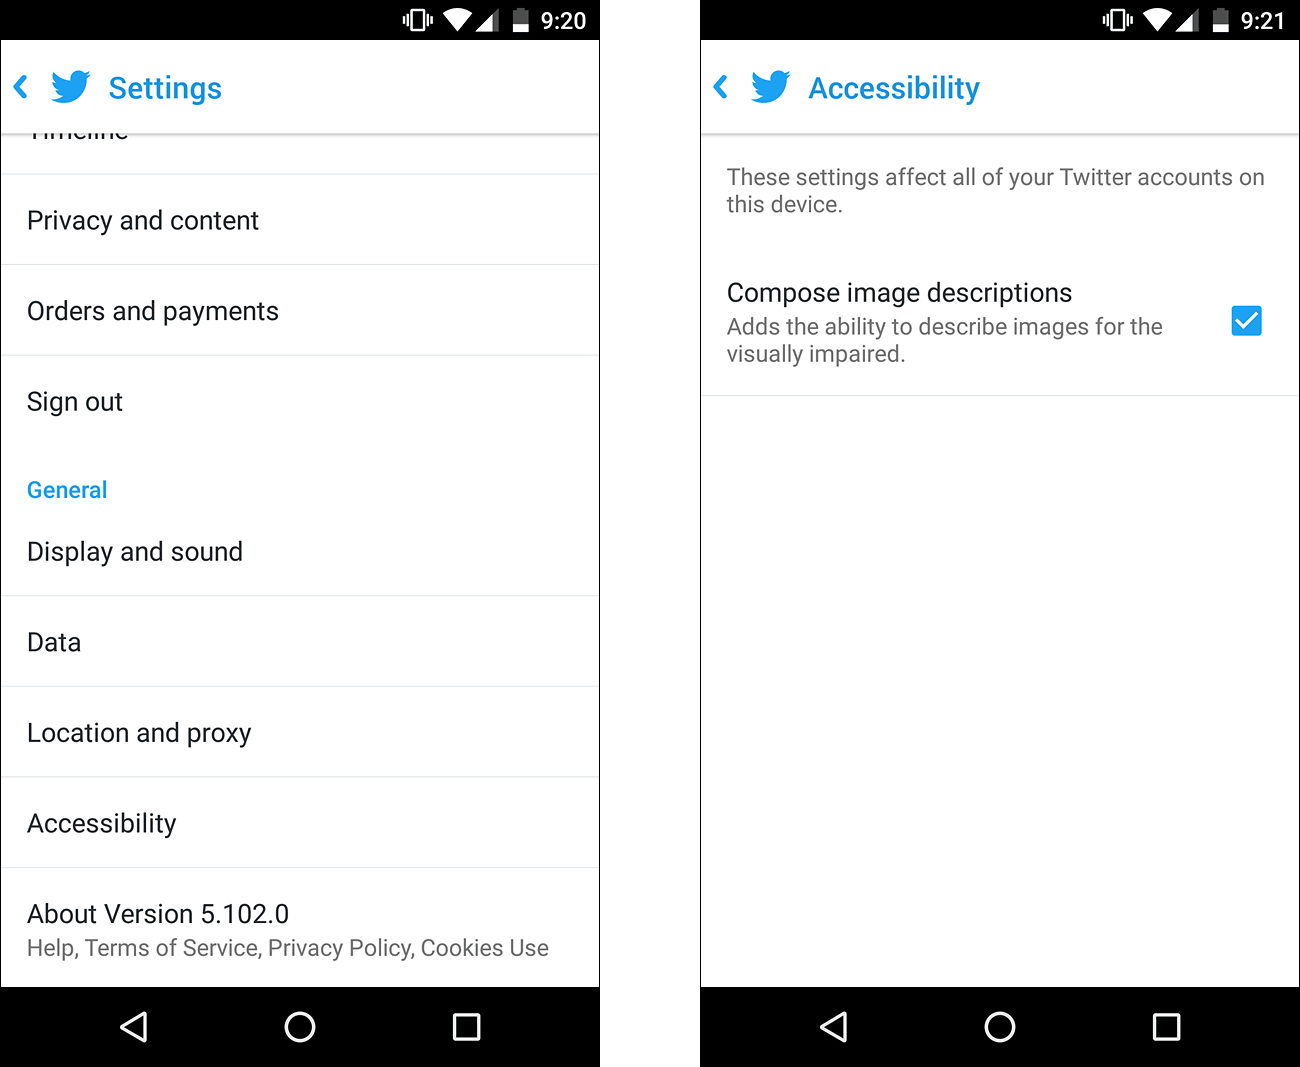 Two screenshots of settings for Twitter for Android. The first screenshot shows Accessibility option in Twitter Settings screen. The second screenshot shows Compose image description option to add ability to describe images for the visually impaired.